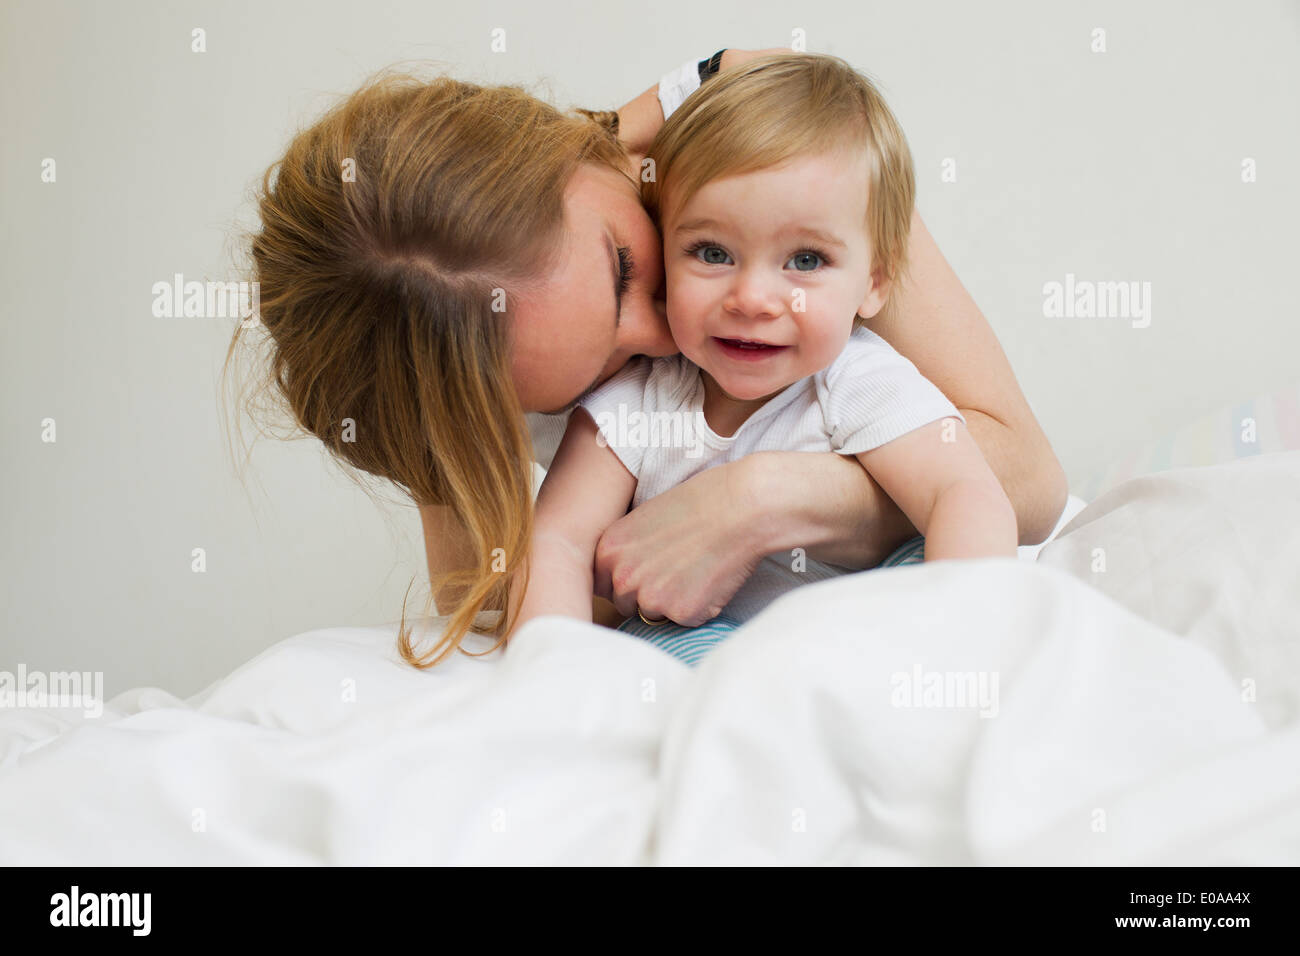 Portrait of mid adult woman hugging her year old baby girl - Stock Image